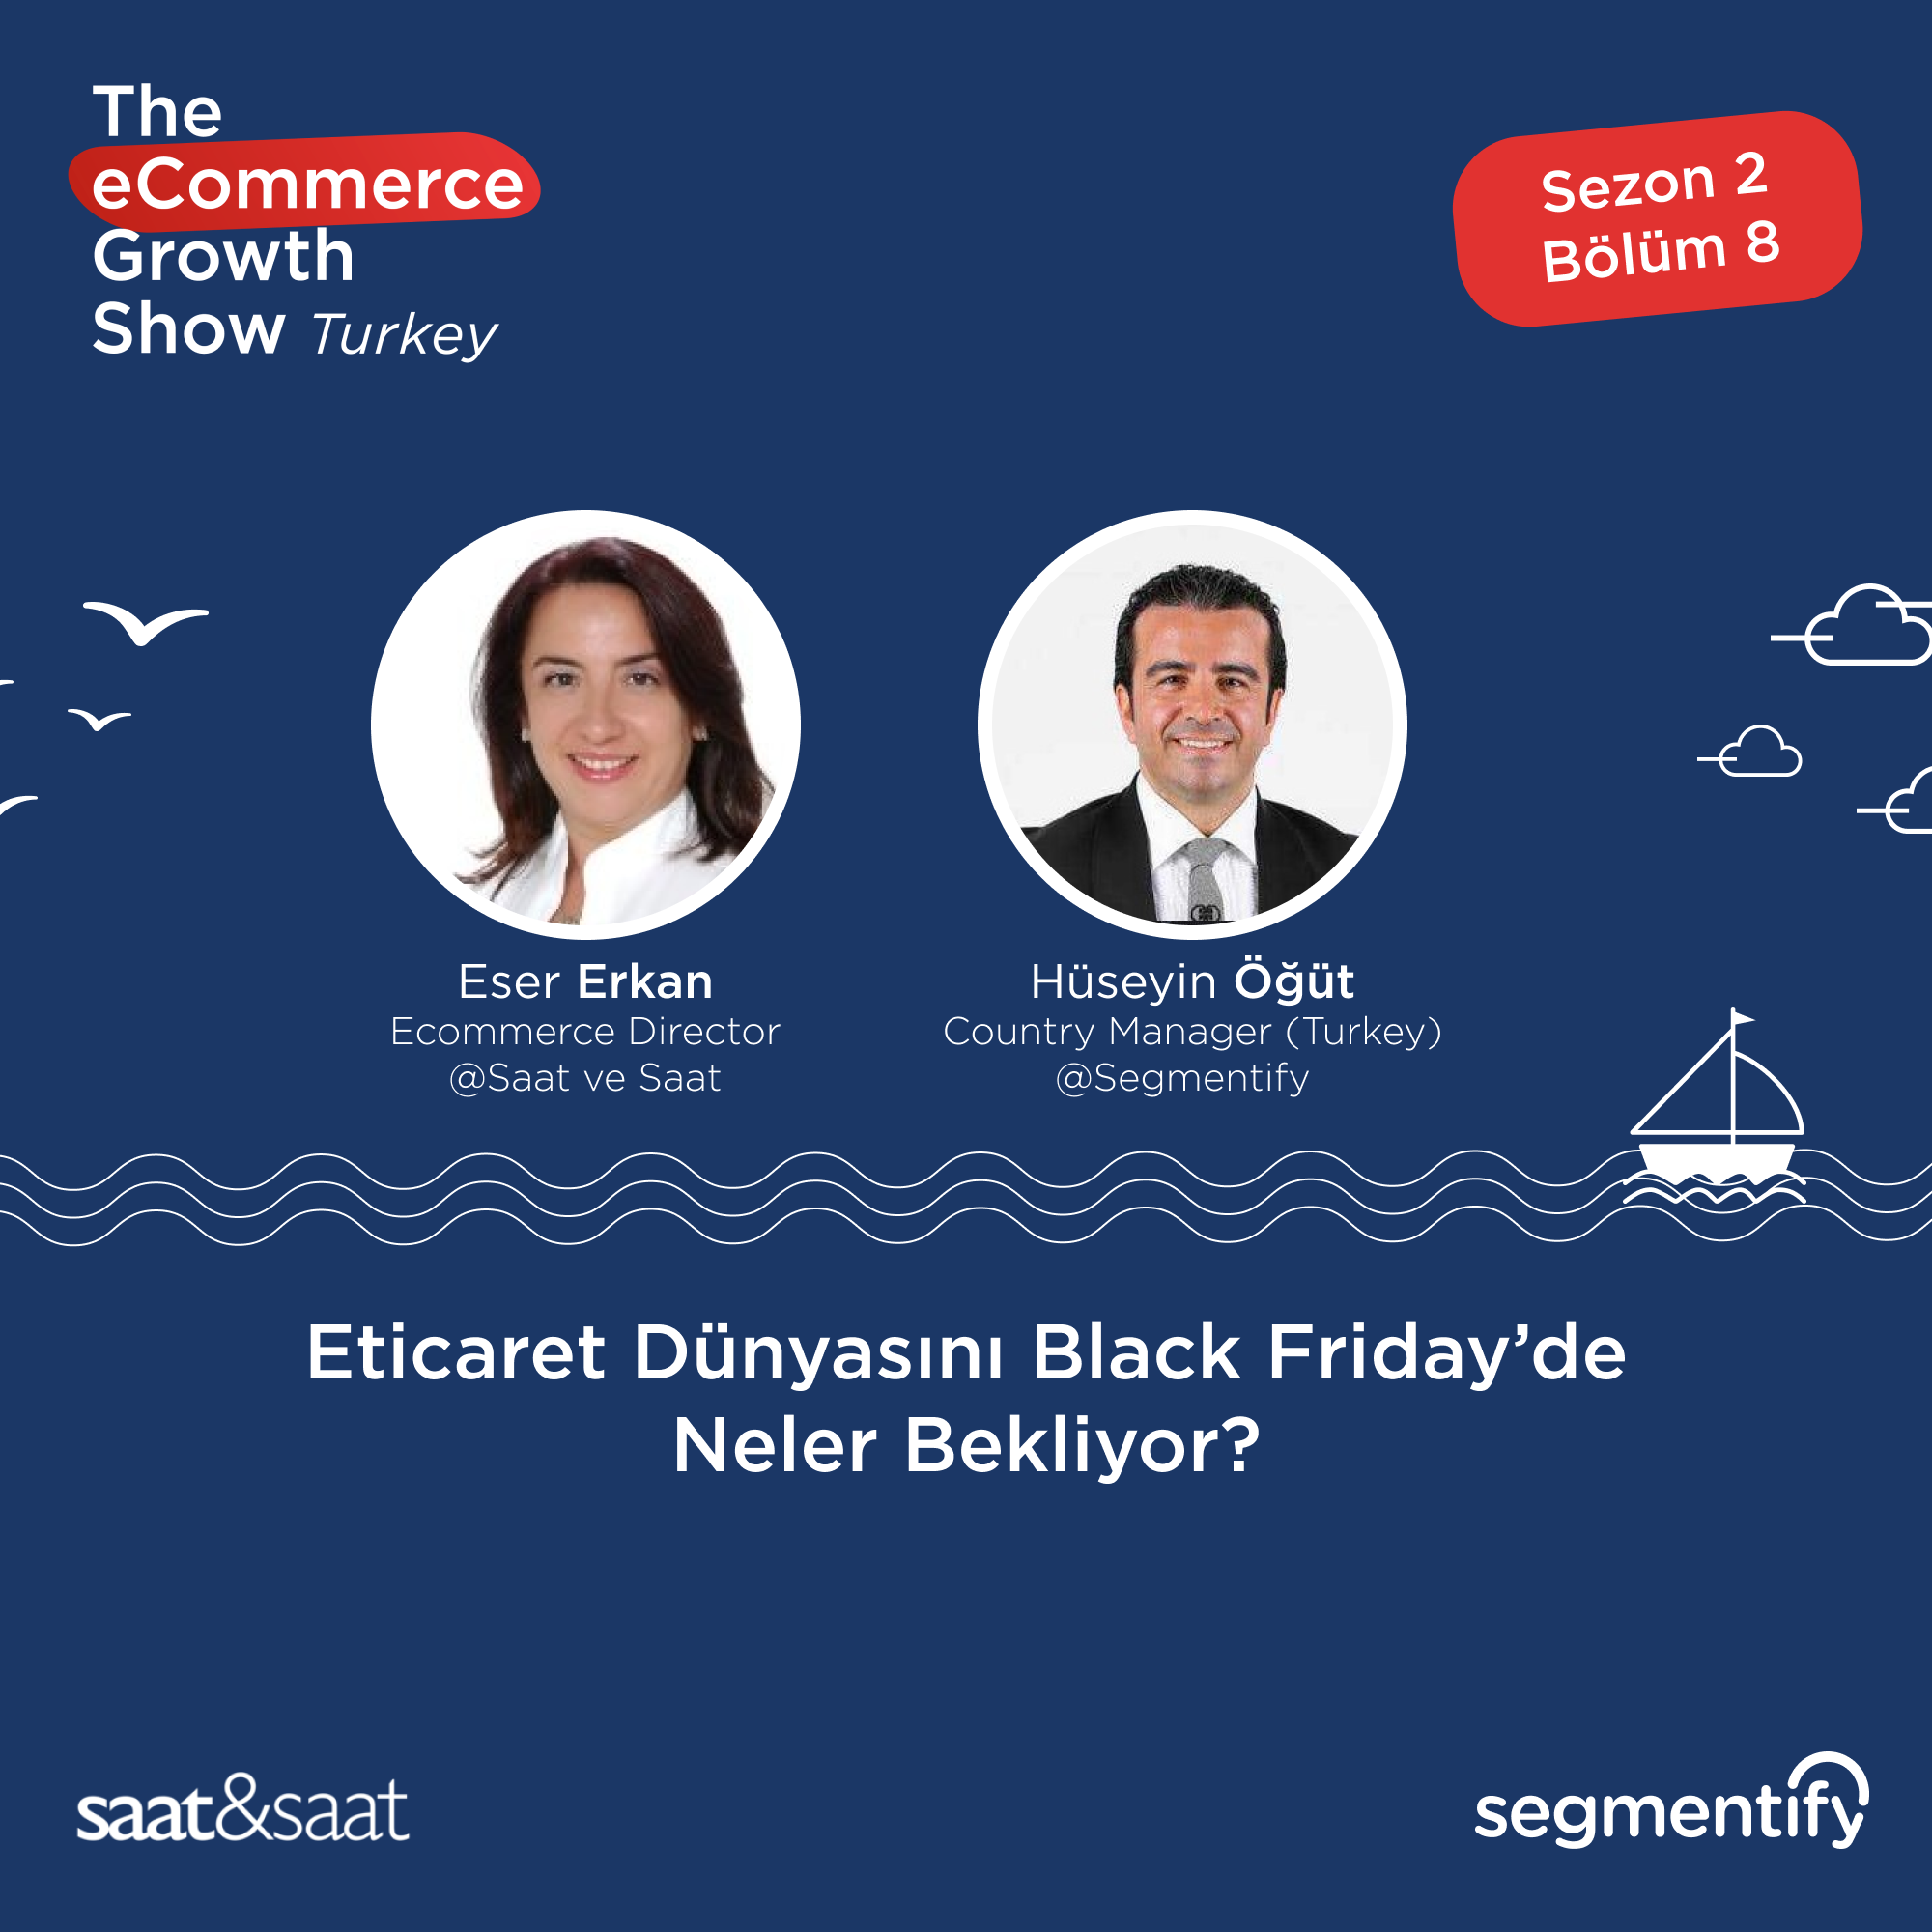 Artwork for podcast The eCommerce Growth Show Turkey